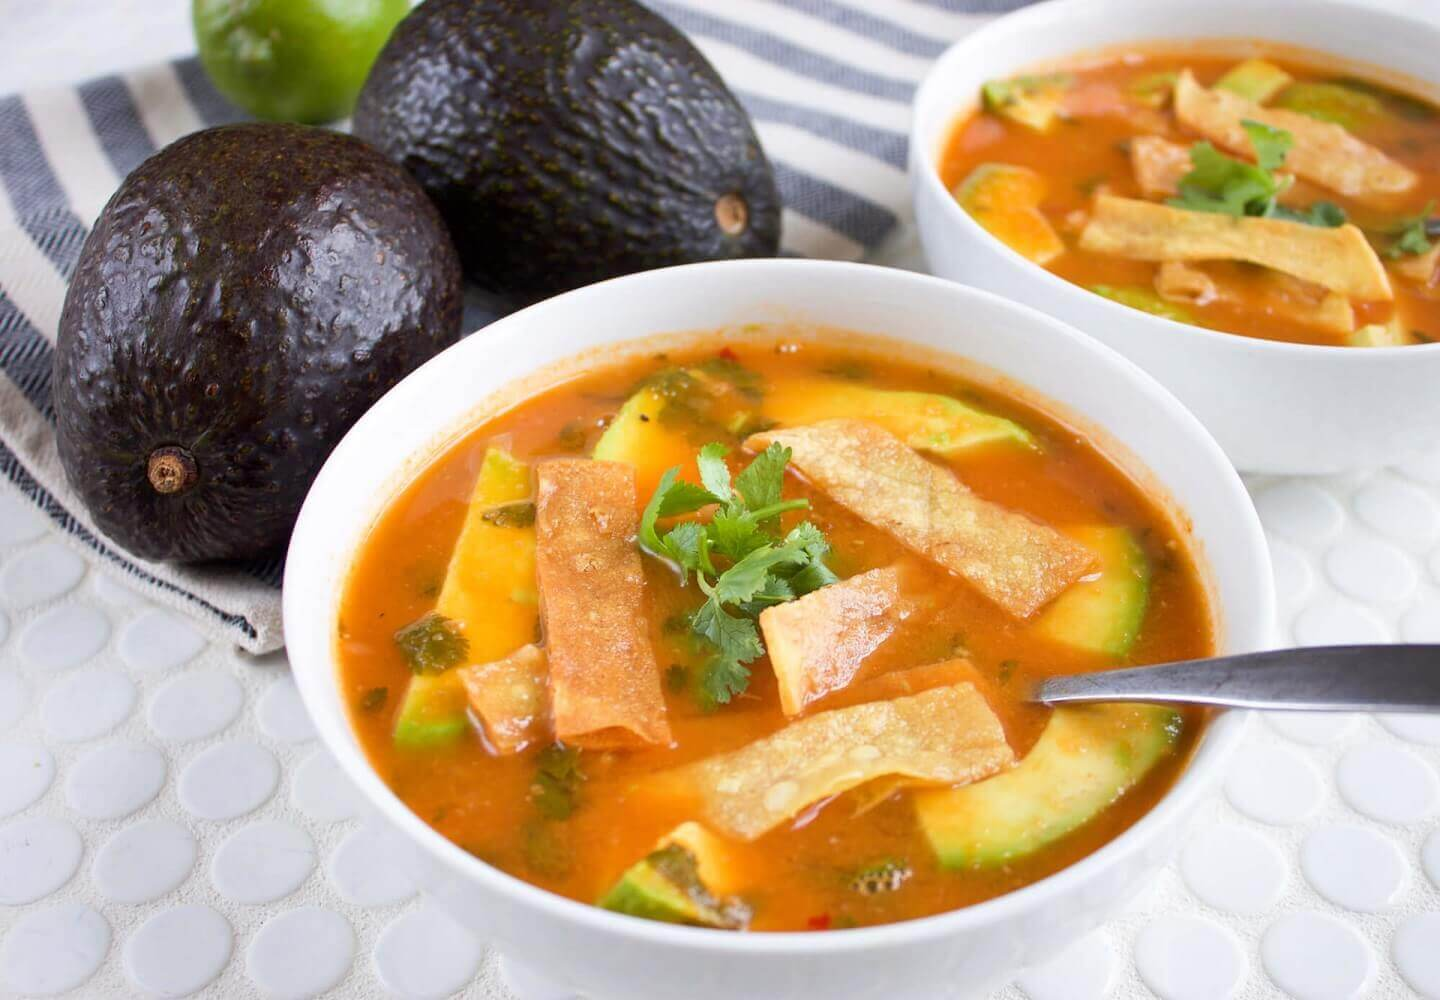 Southwestern Recipes: Avocado and Tortilla Soup